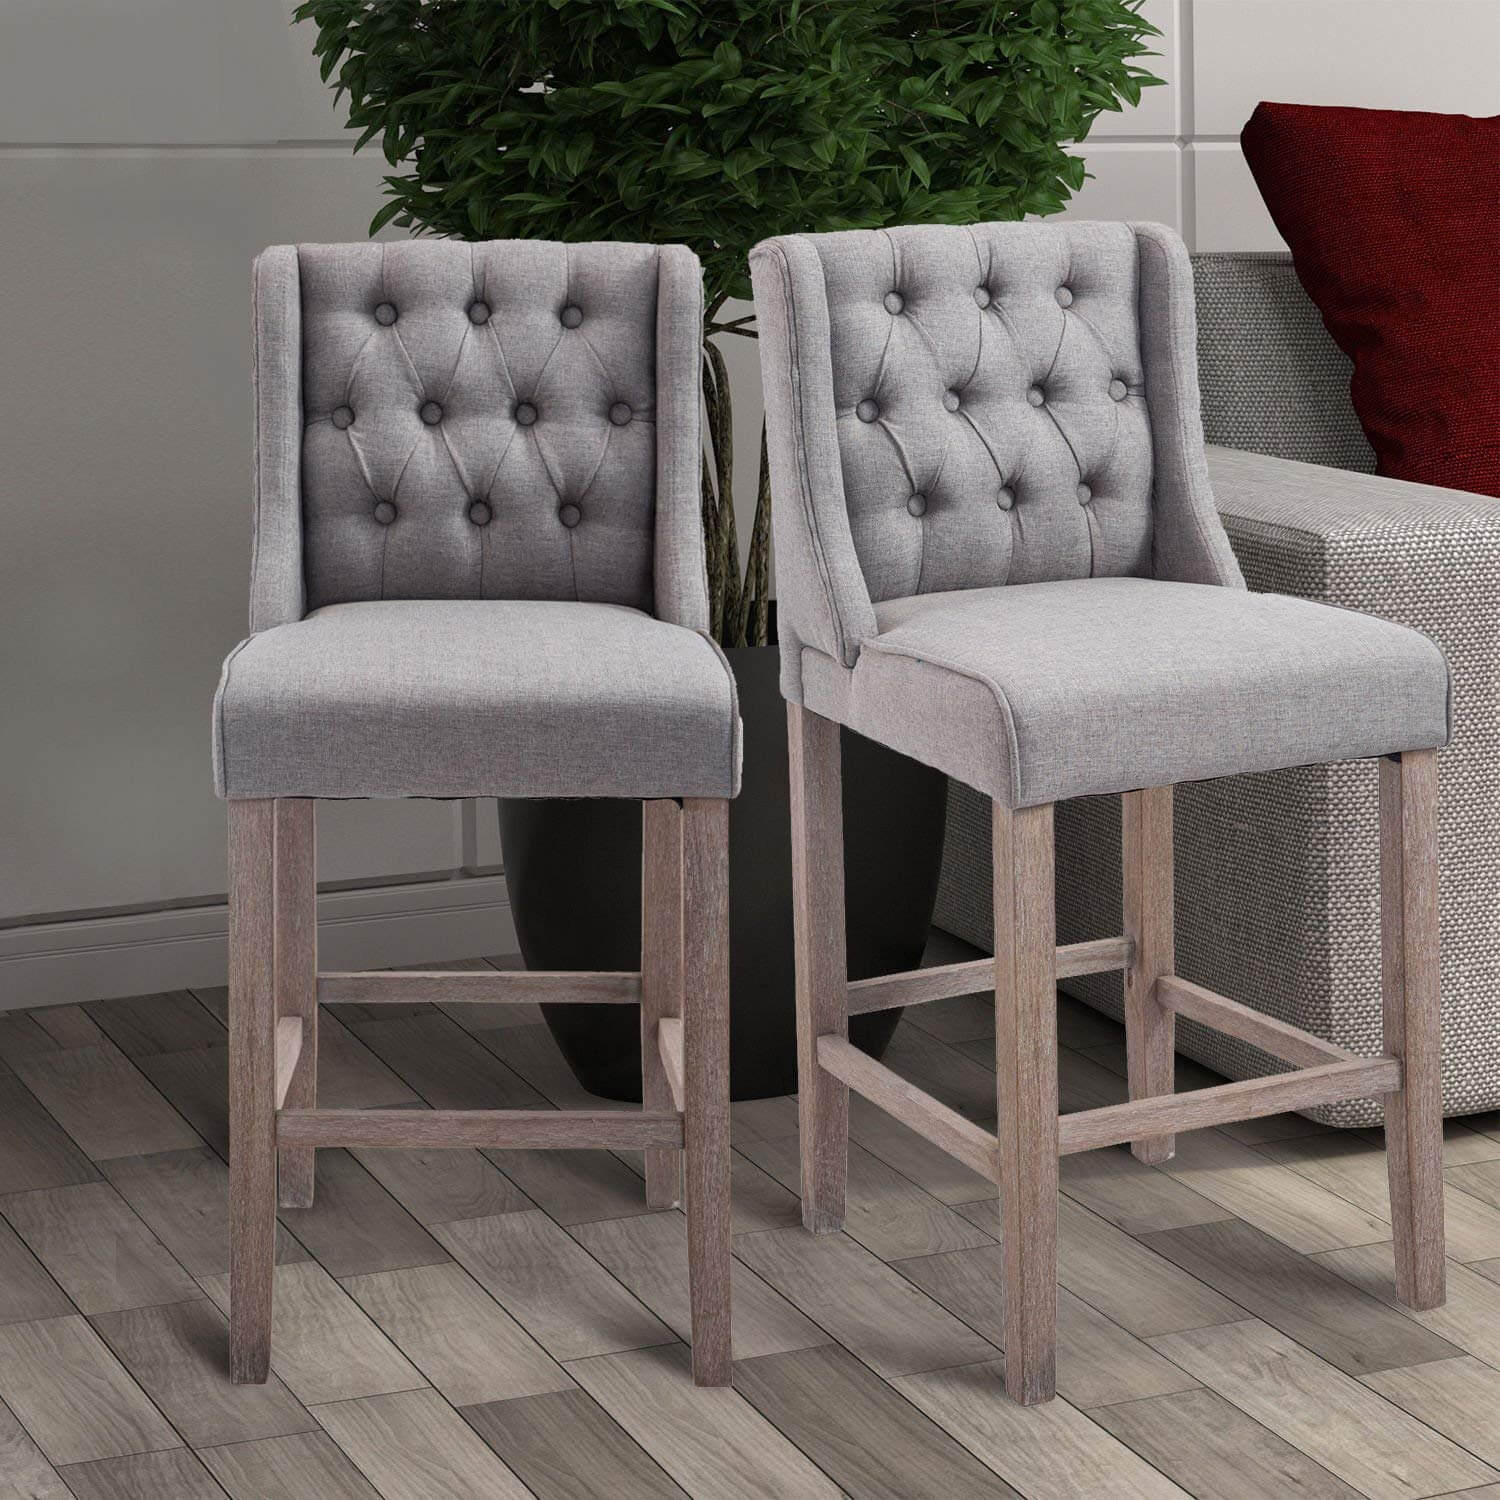 Enjoyable Homcom Tufted Counter Height Bar Stool Set Of 2 Ibusinesslaw Wood Chair Design Ideas Ibusinesslaworg